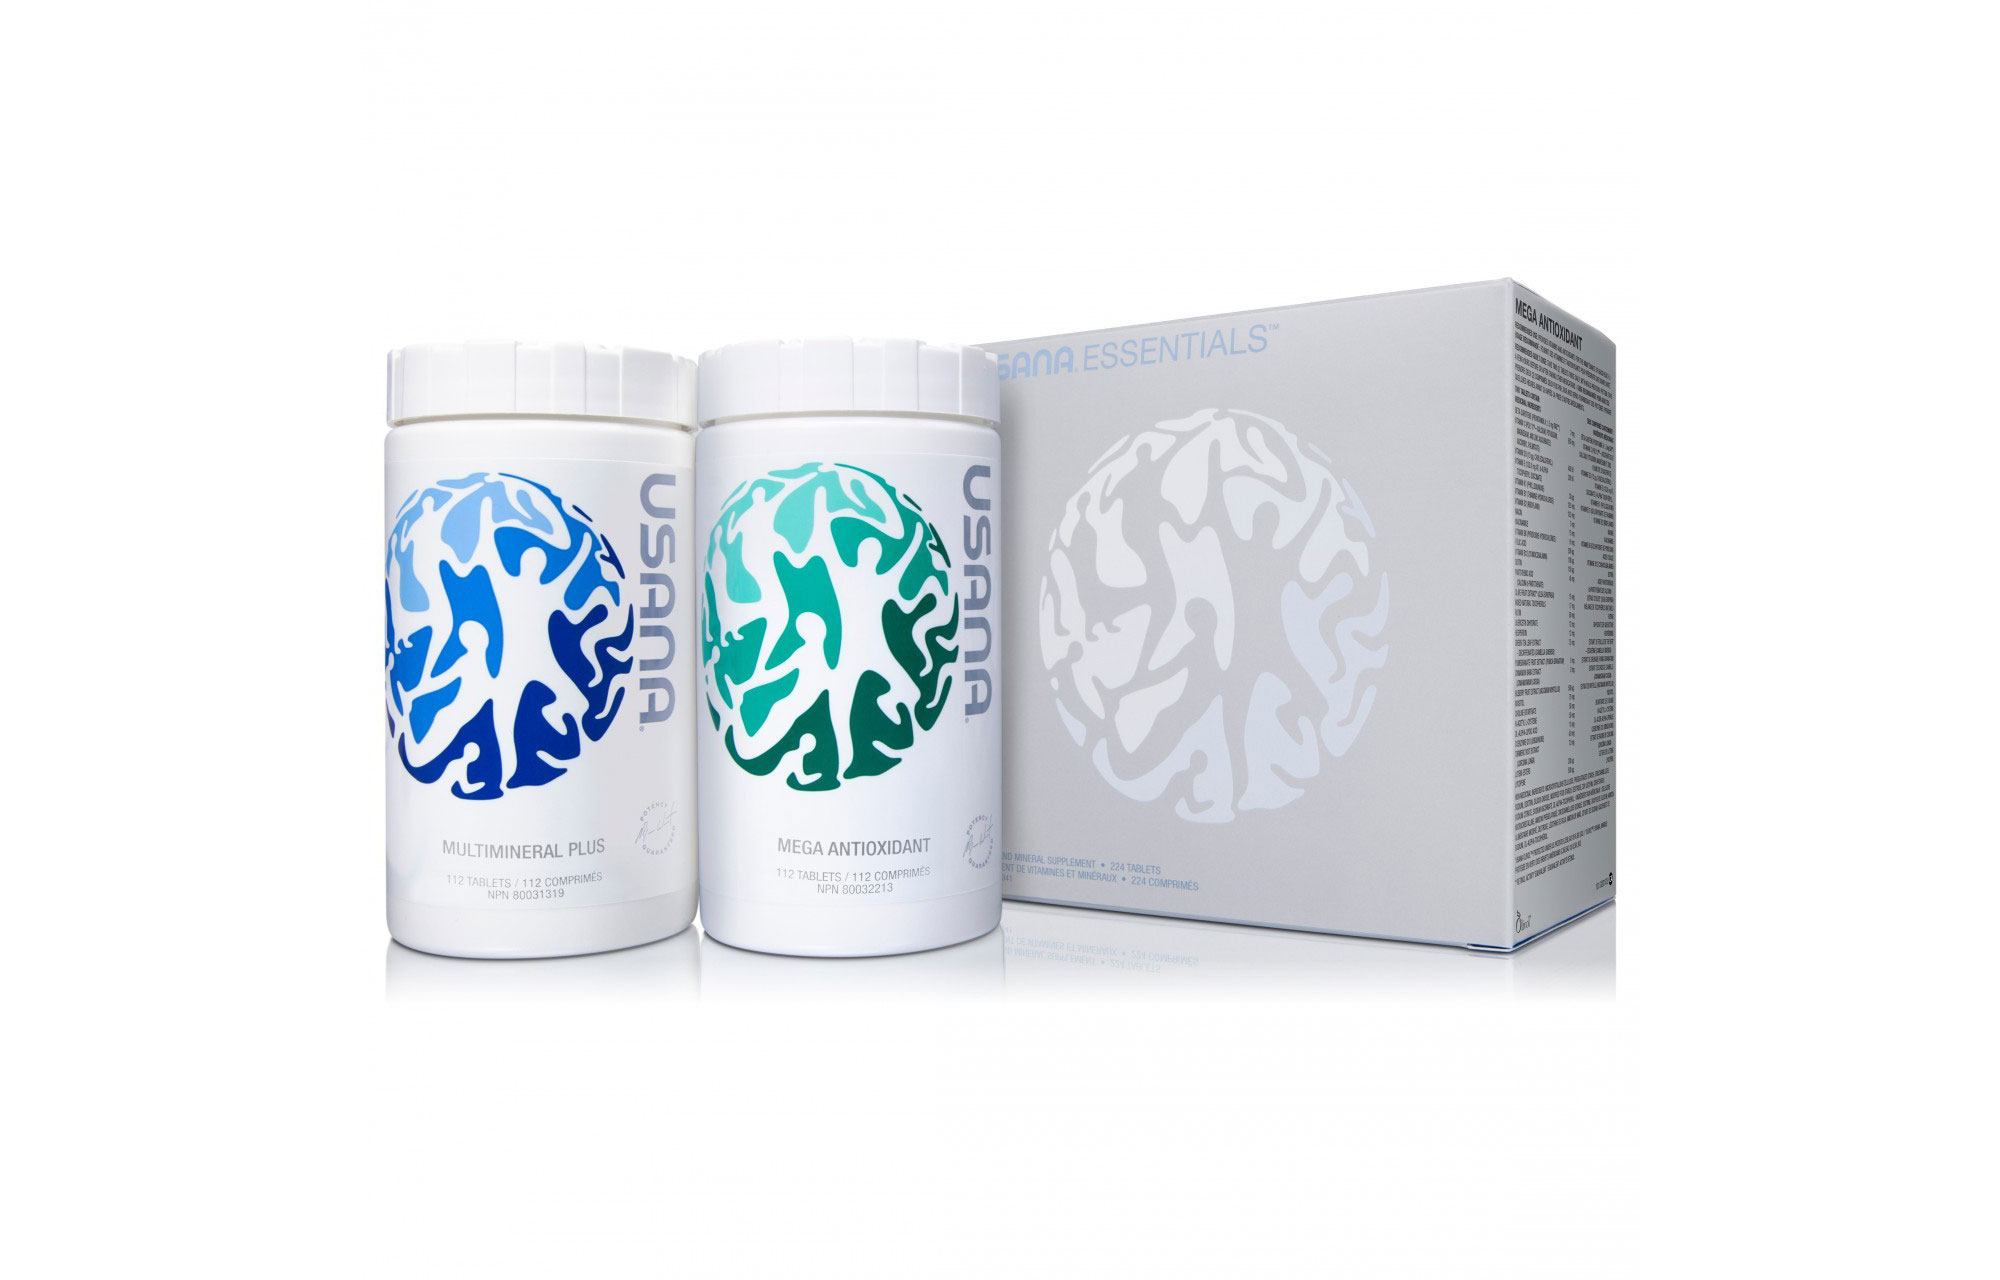 Fight-back with Usana Quality Supplements